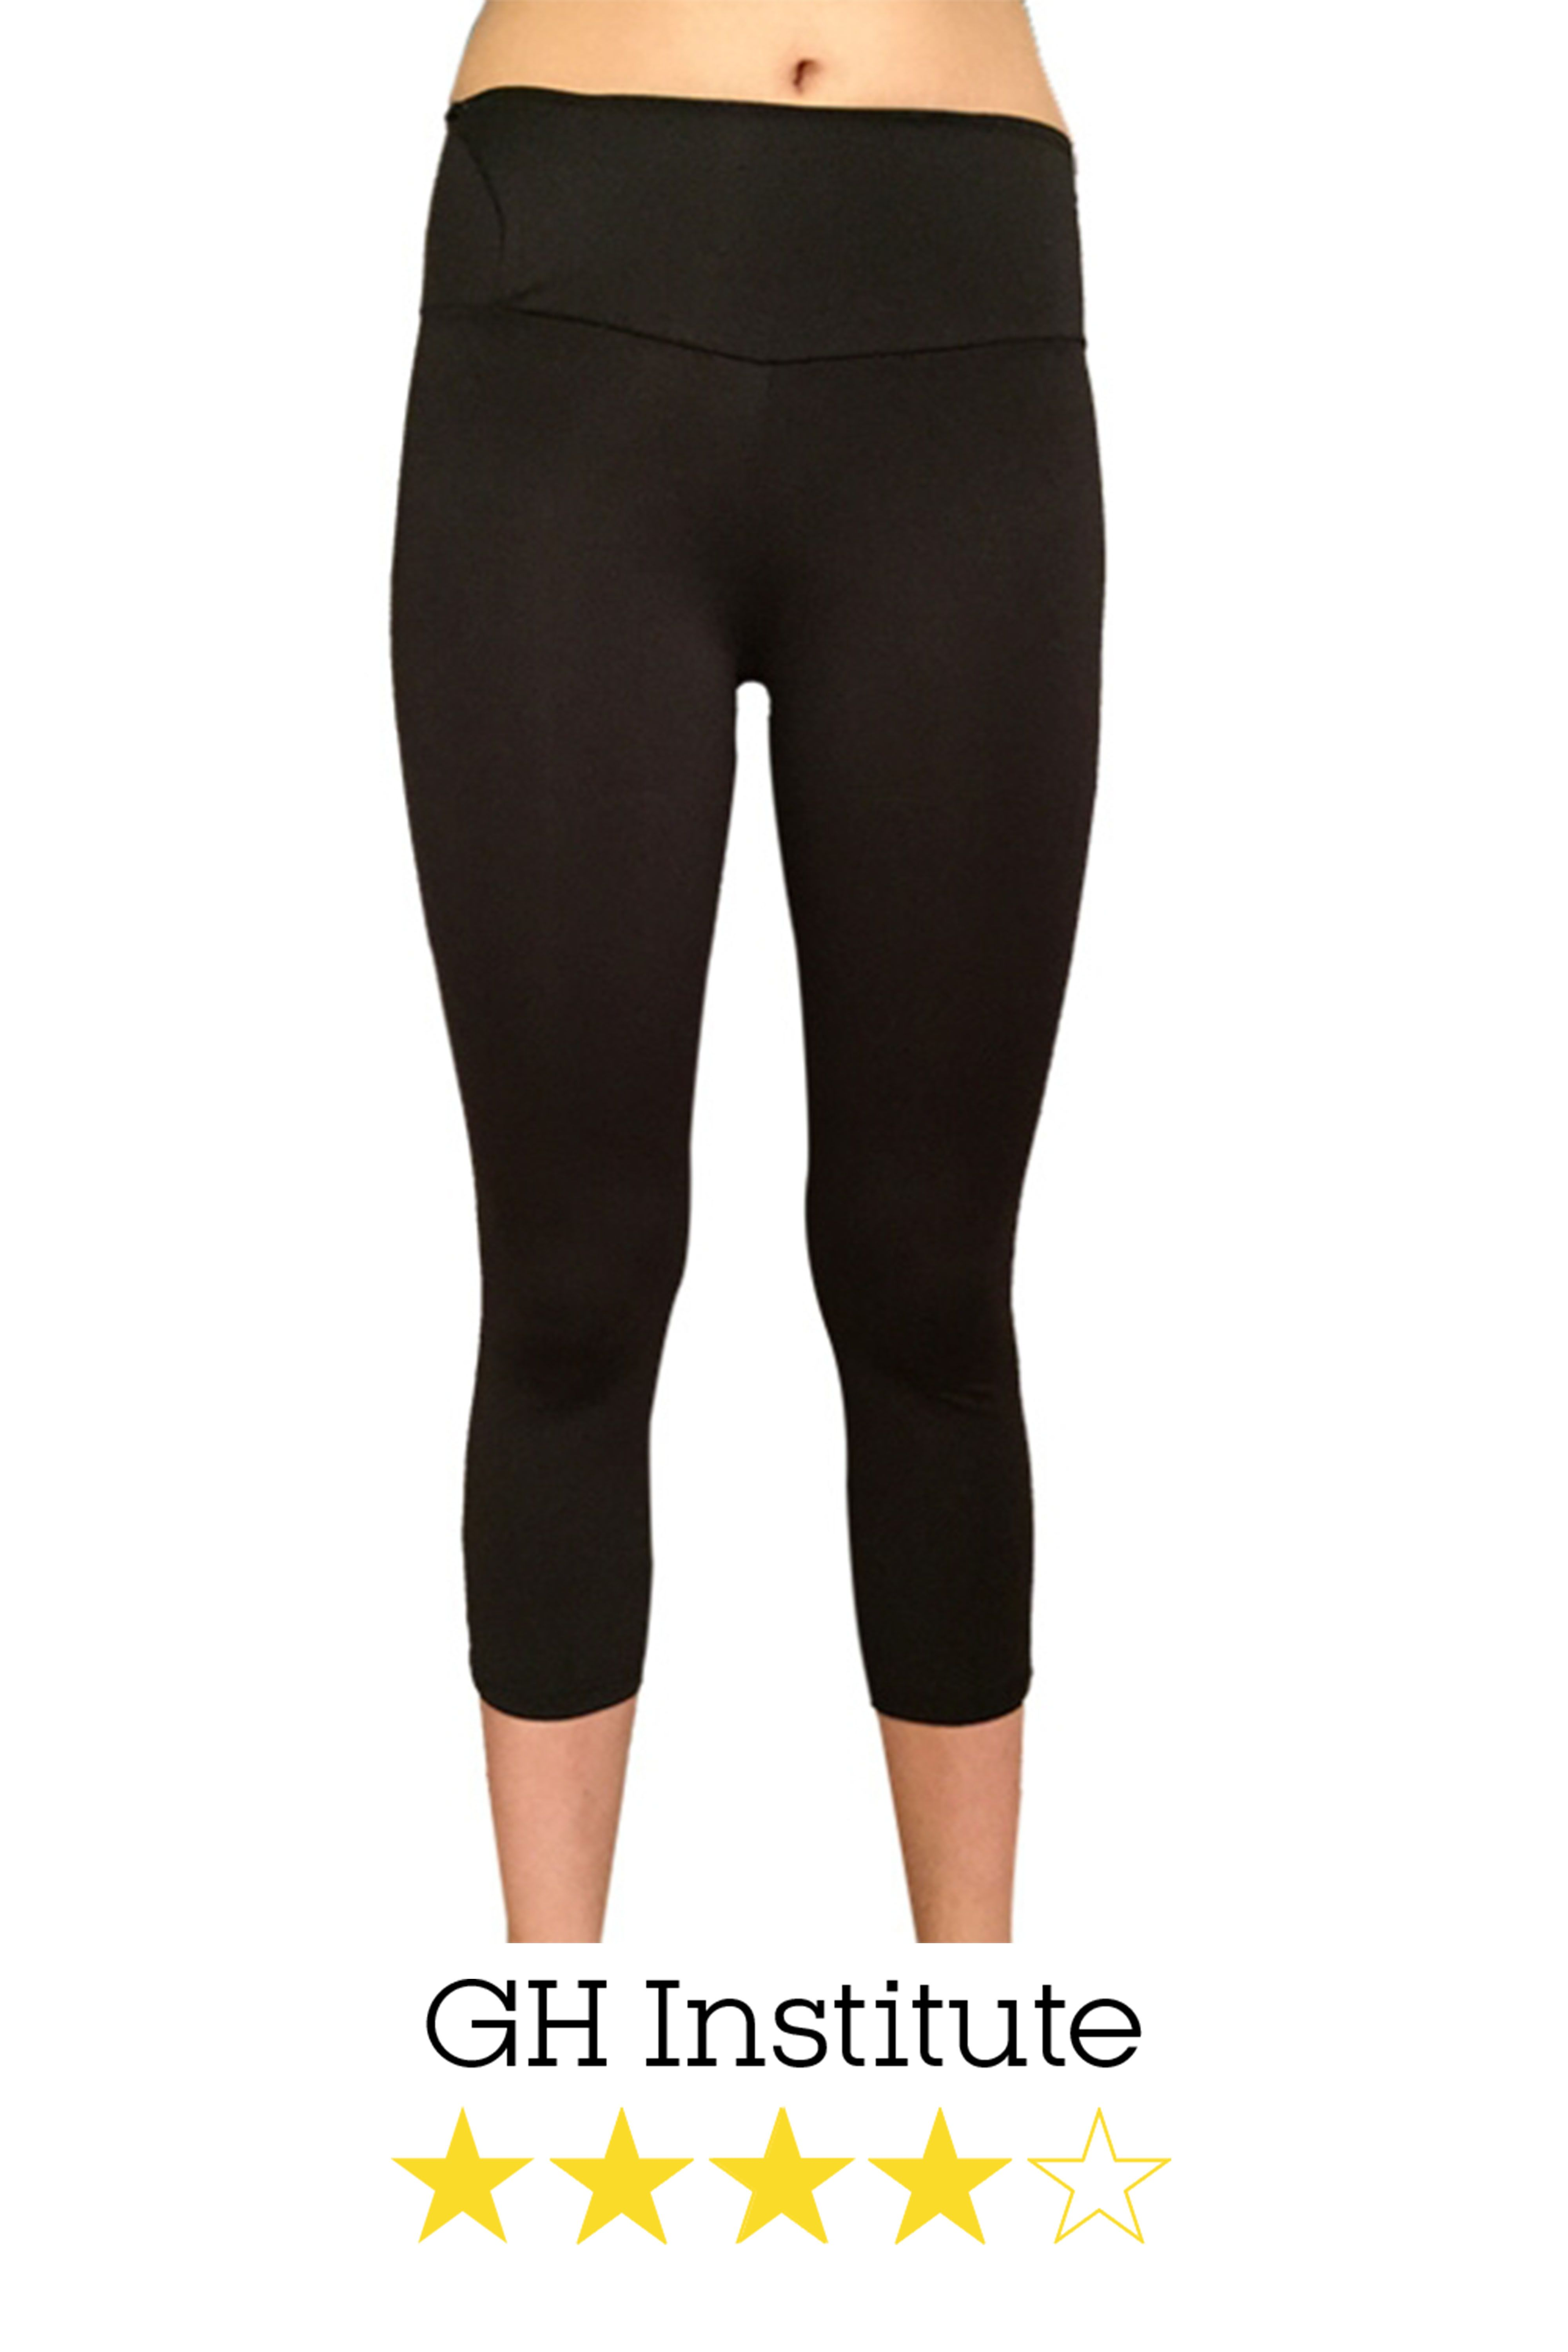 Watch The 12 Best Workout Leggings to Buy in 2019 video